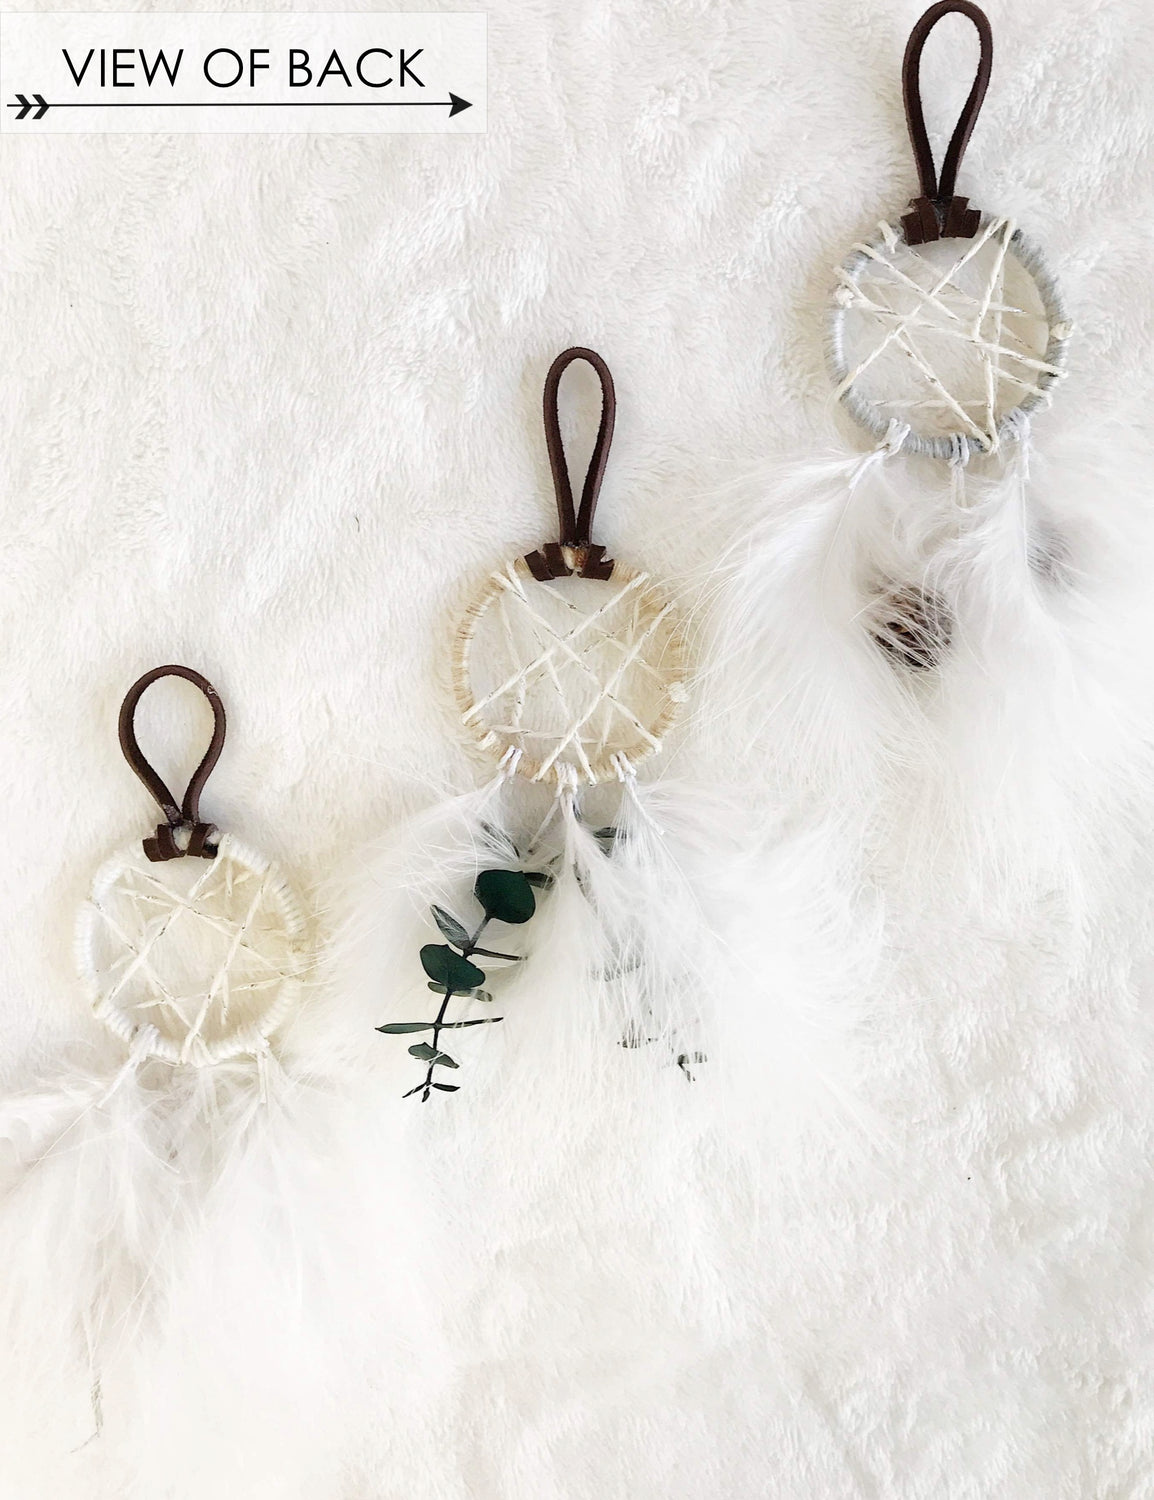 Winter Garden Dream Catcher Ornament - Wild Grains